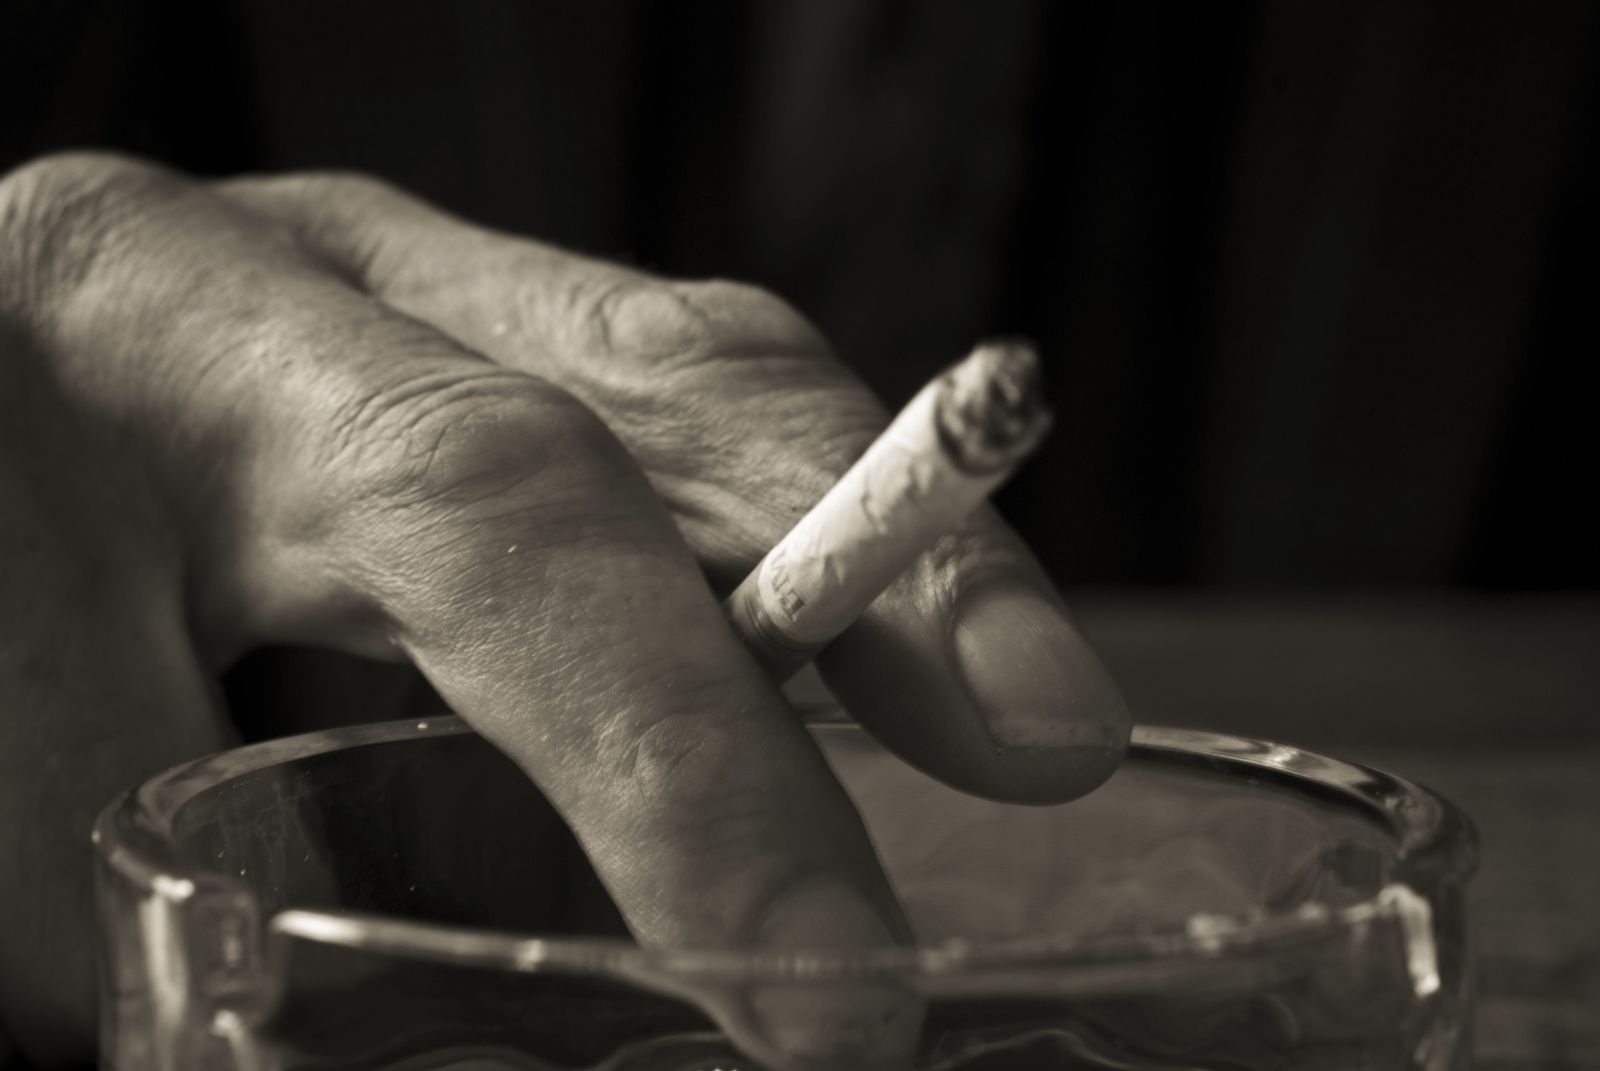 Smoking and Mesothelioma as Risk Factors